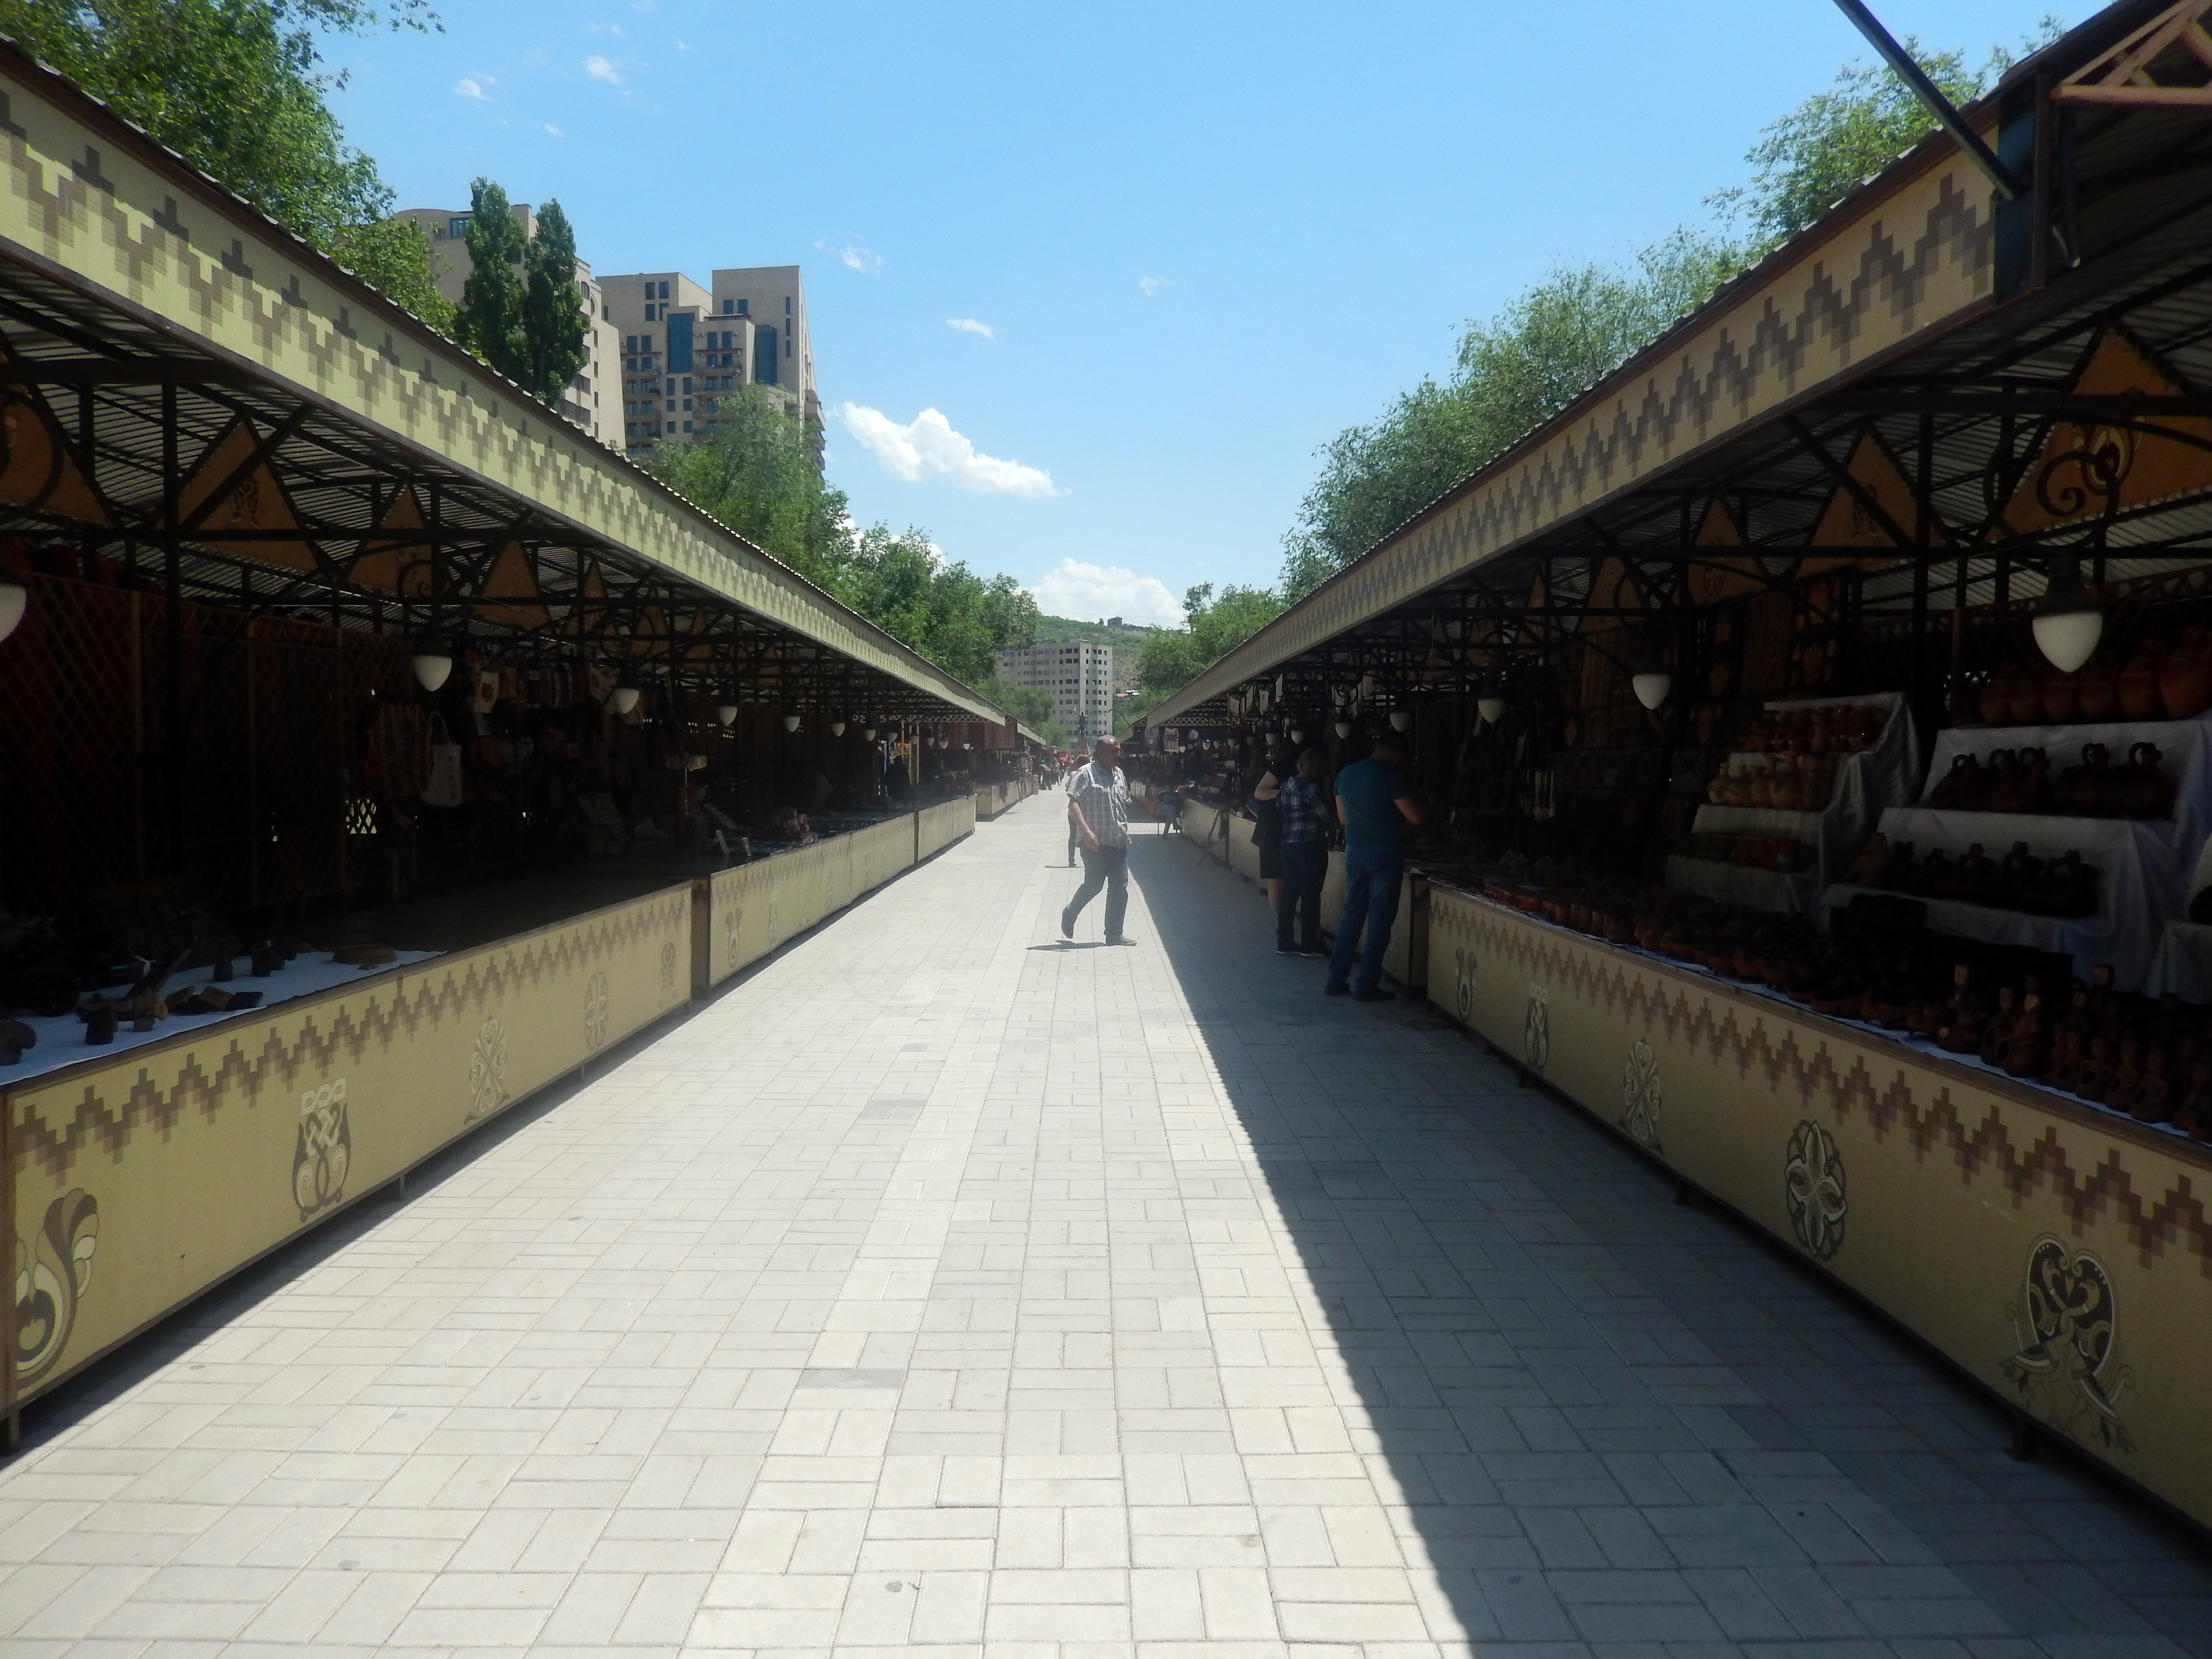 Yerevan Vernissage after renovation (3).jpg Հայերեն: Yerevan Vernissage after renovation Date 31 May 2017, 13:09:06 Source Own work Author